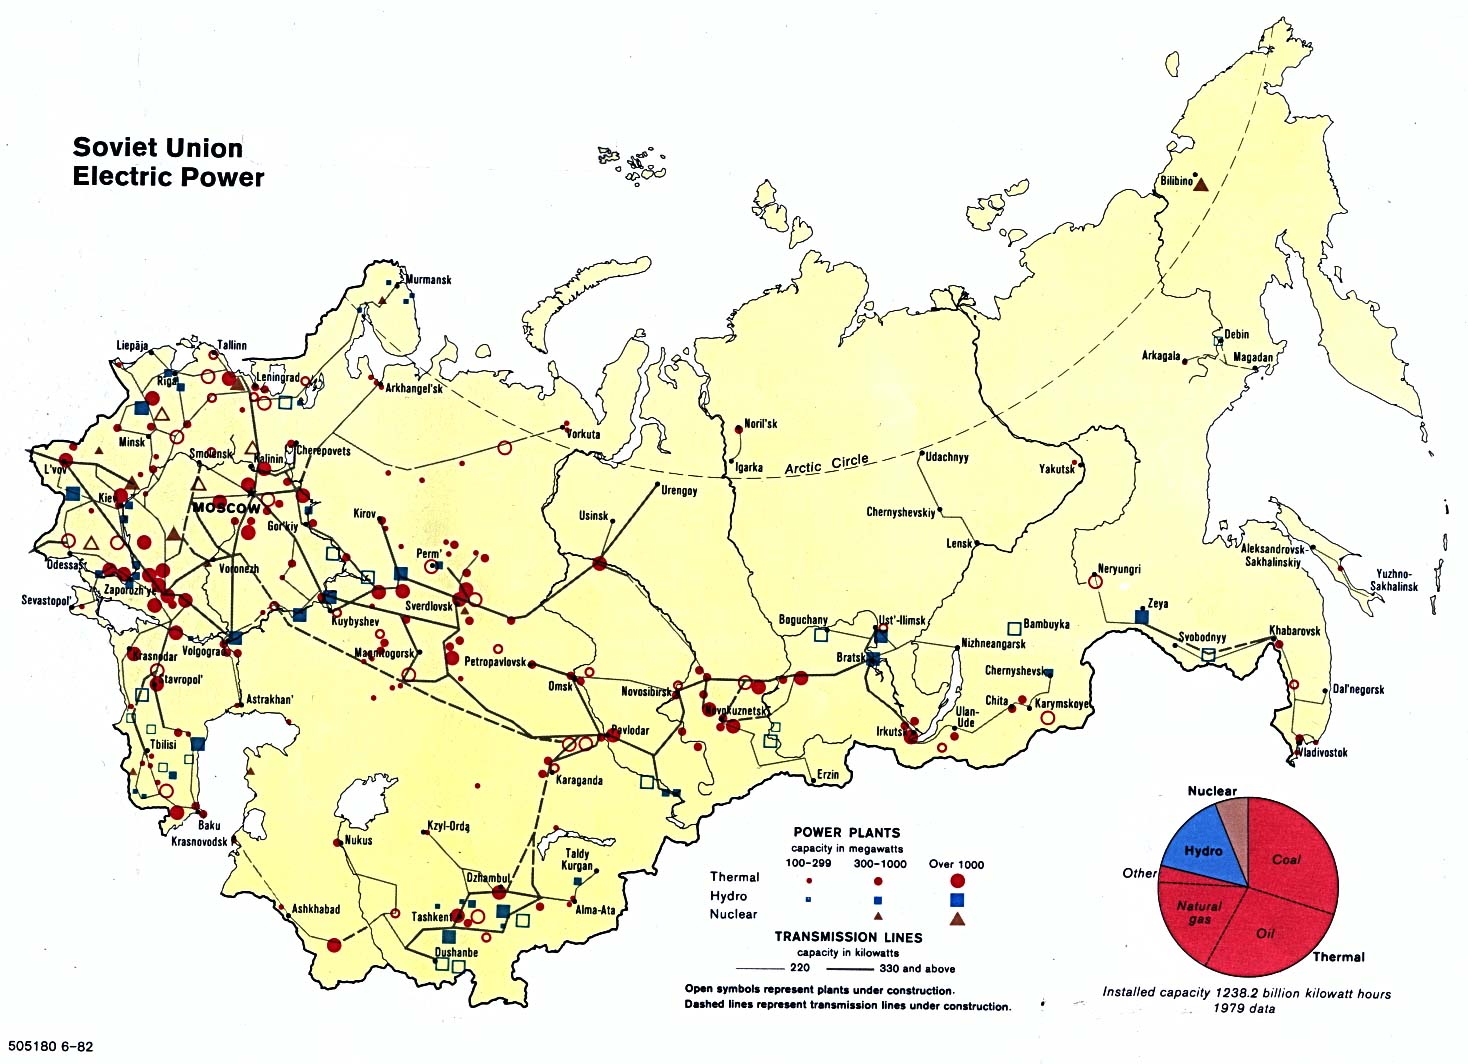 Electric Energy Former Soviet Union 1982 - Full size